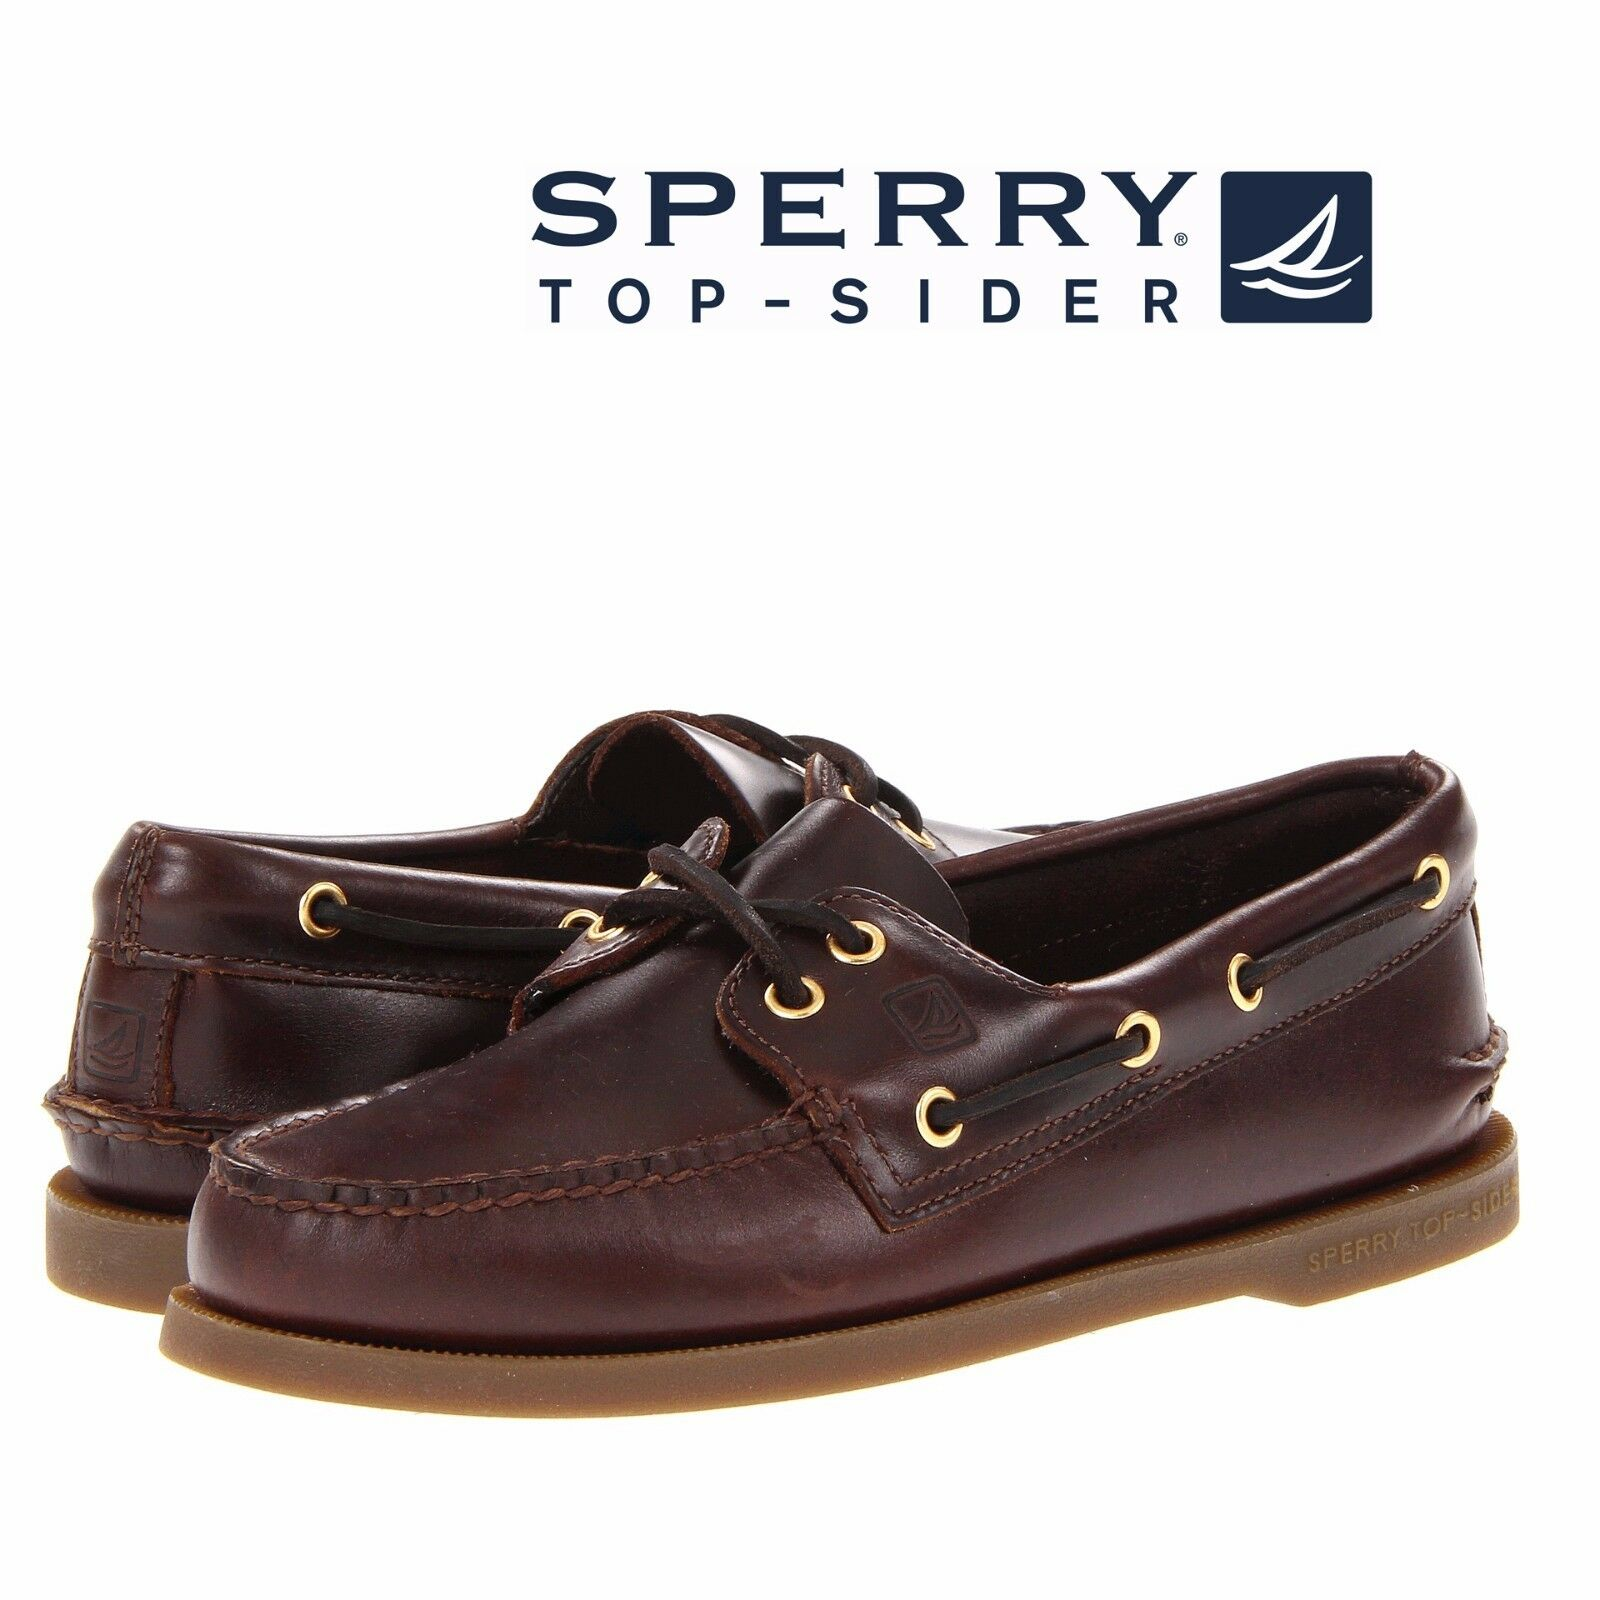 2-Eye Boat Shoes Amaretto Leather